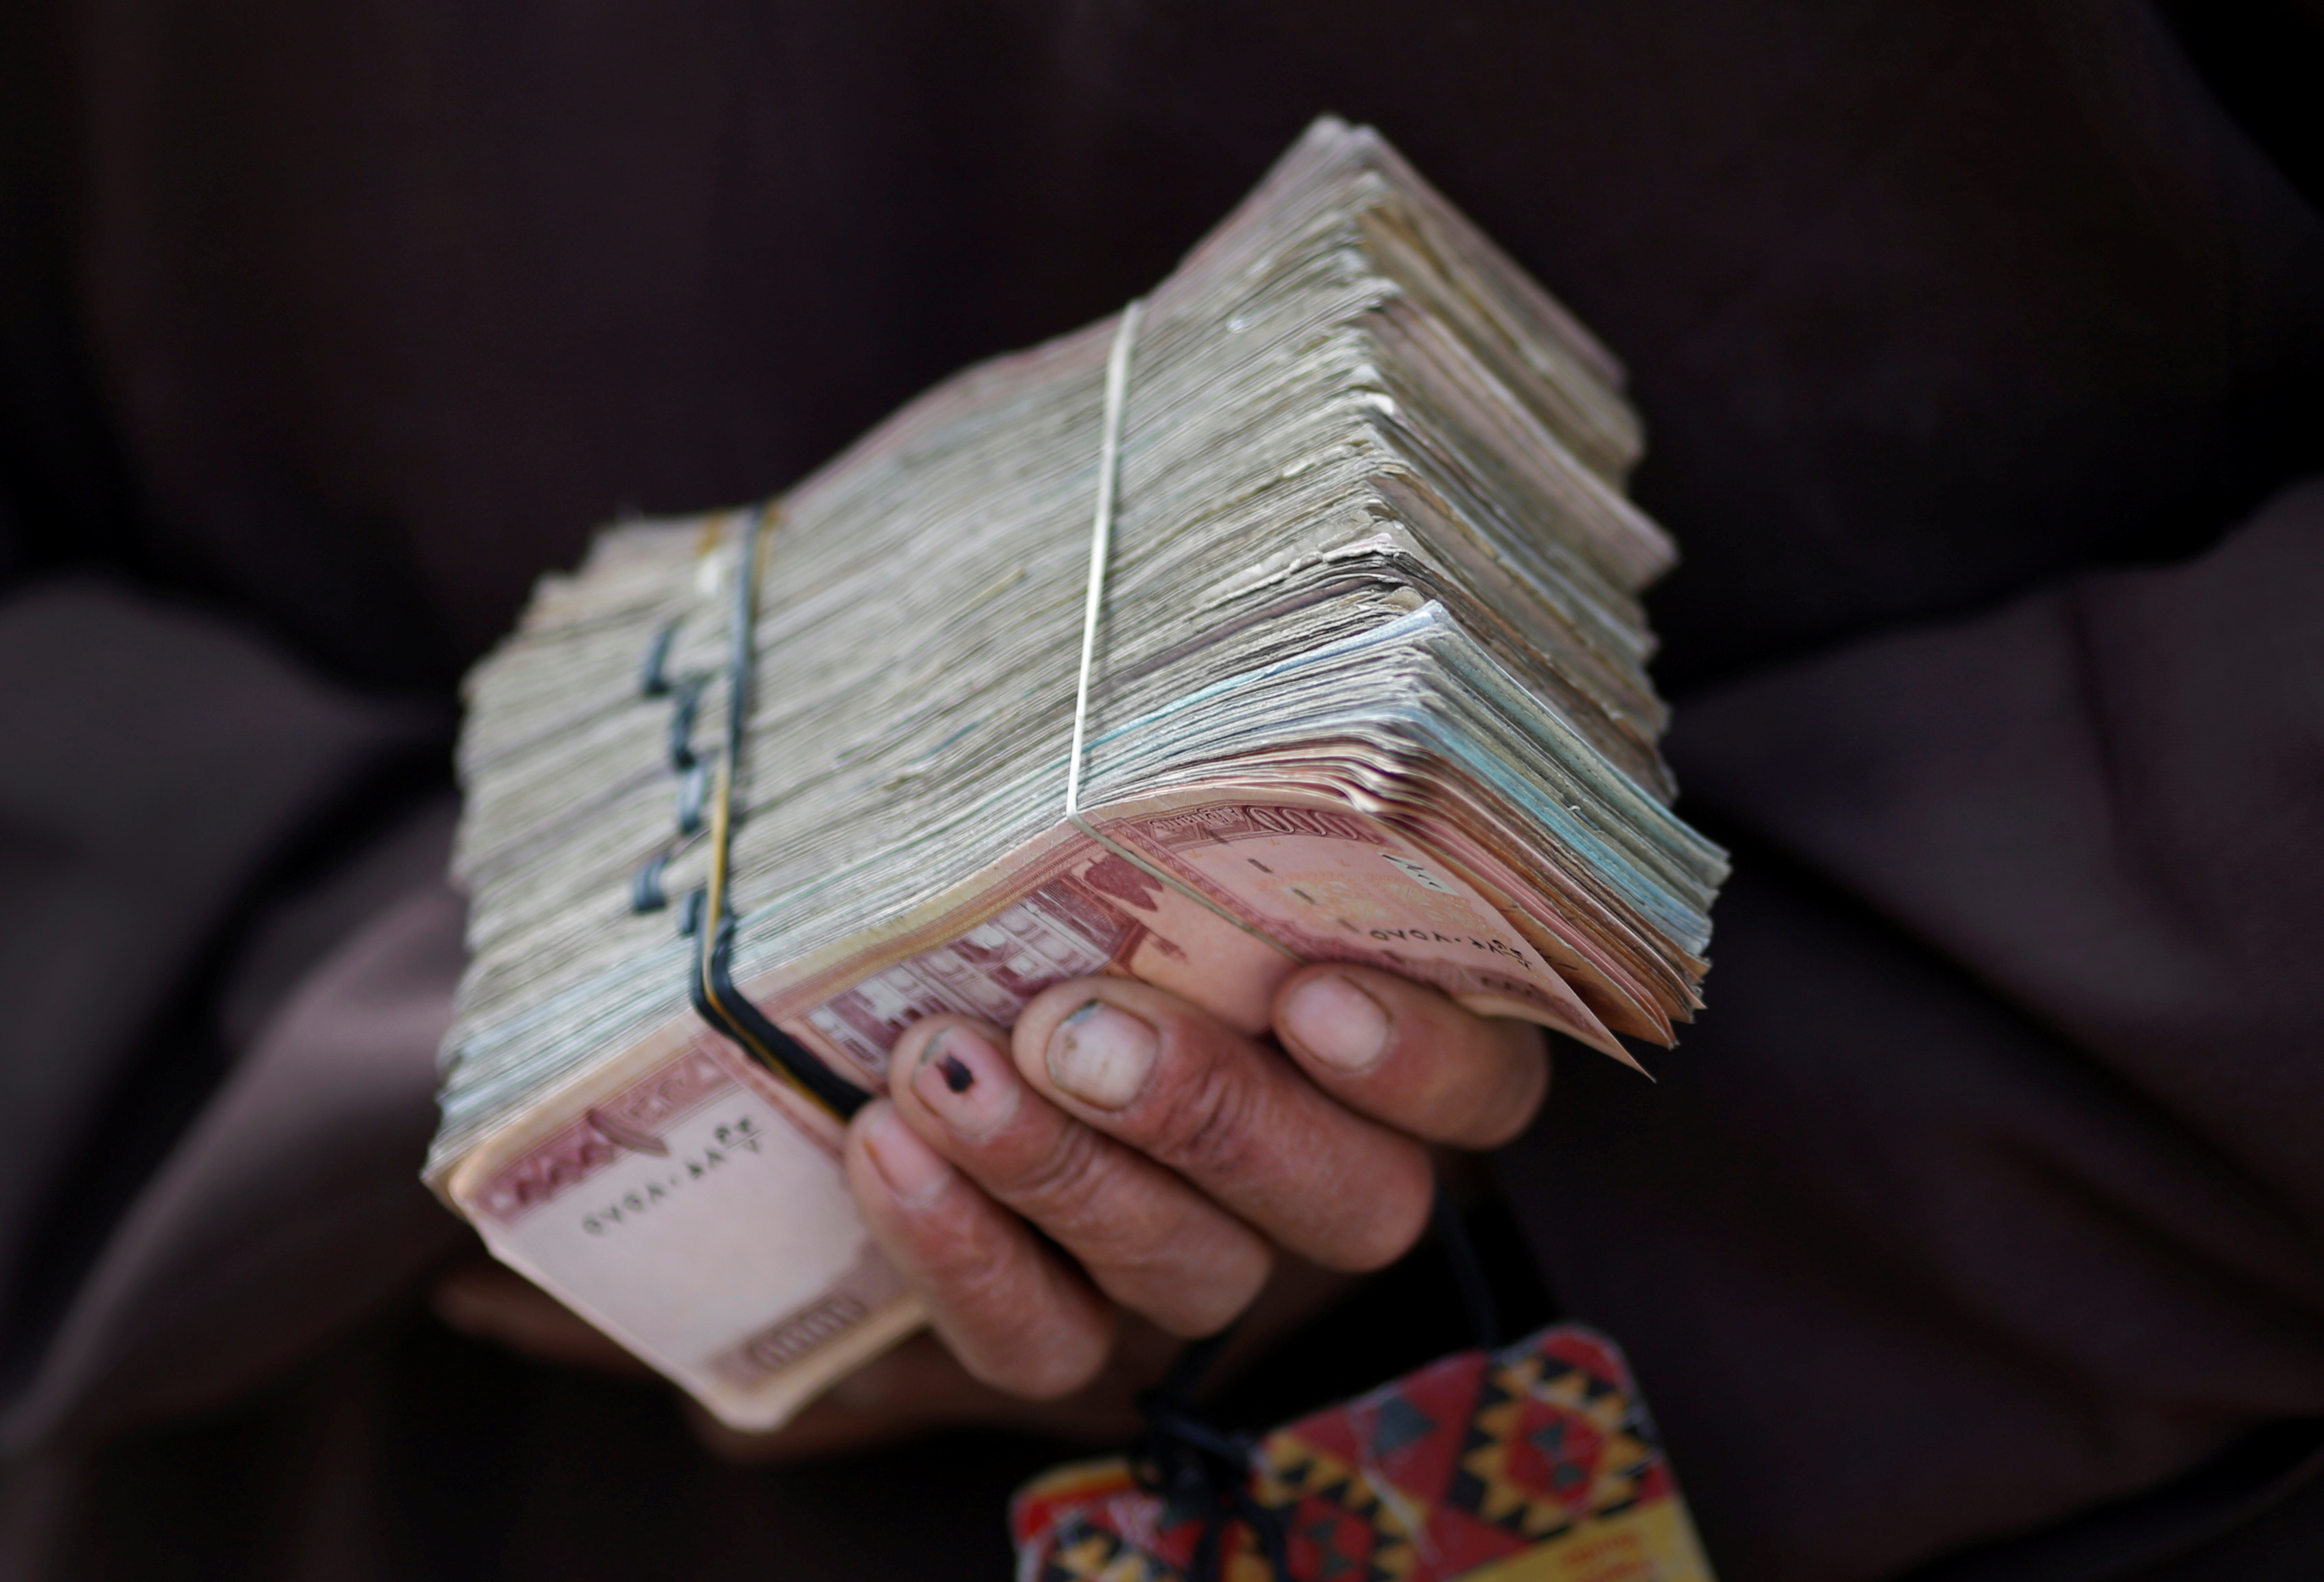 A money changer holds a stack of Afghan currency on a street in central Kabul April 2, 2014. REUTERS/Tim Wimborne